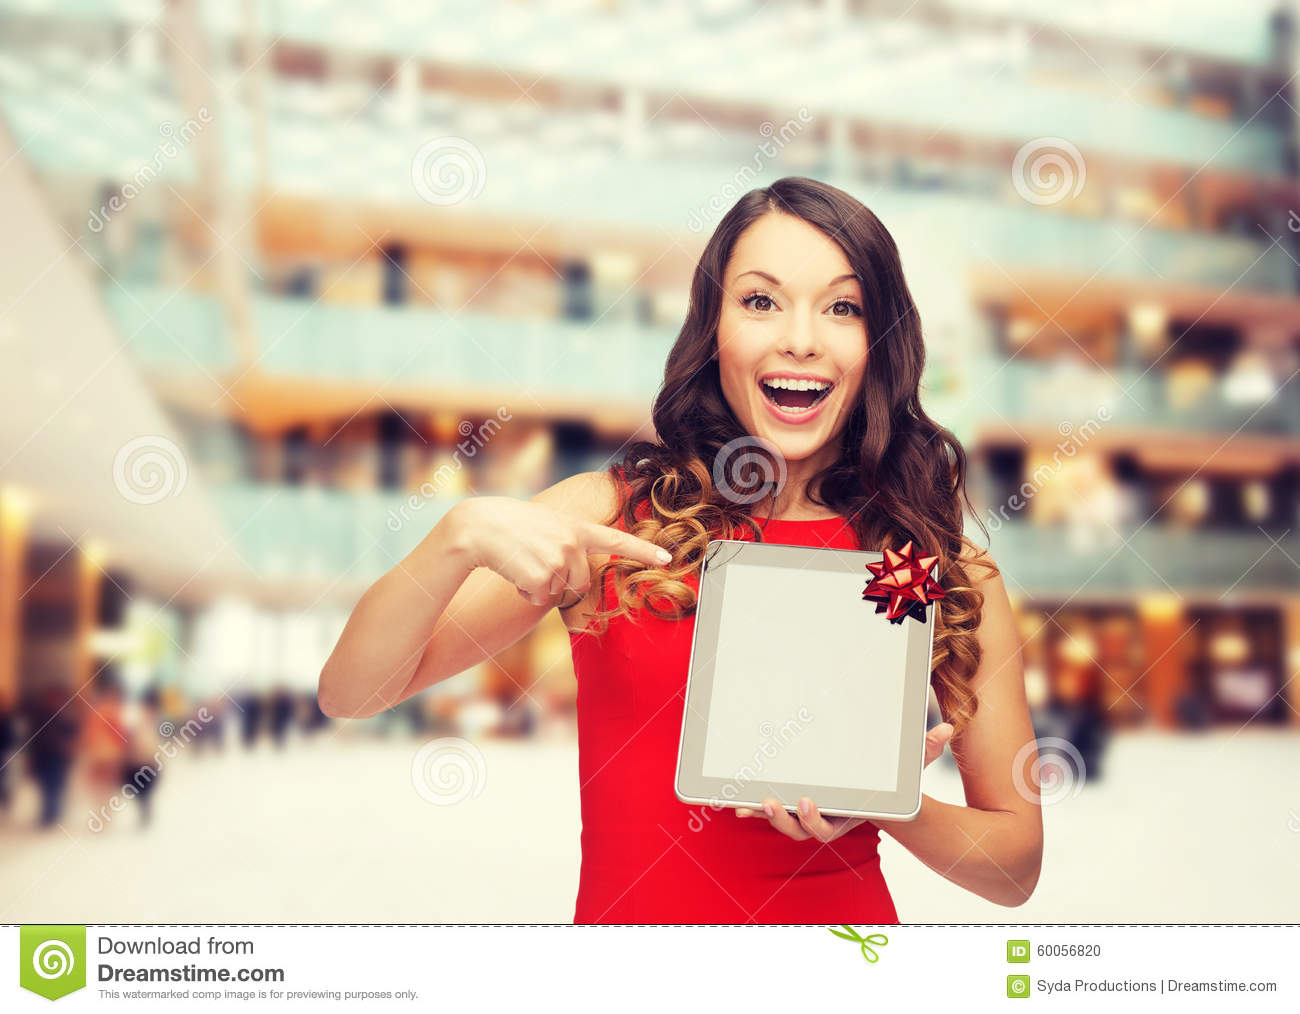 Technology present and people concept smiling woman in red dress